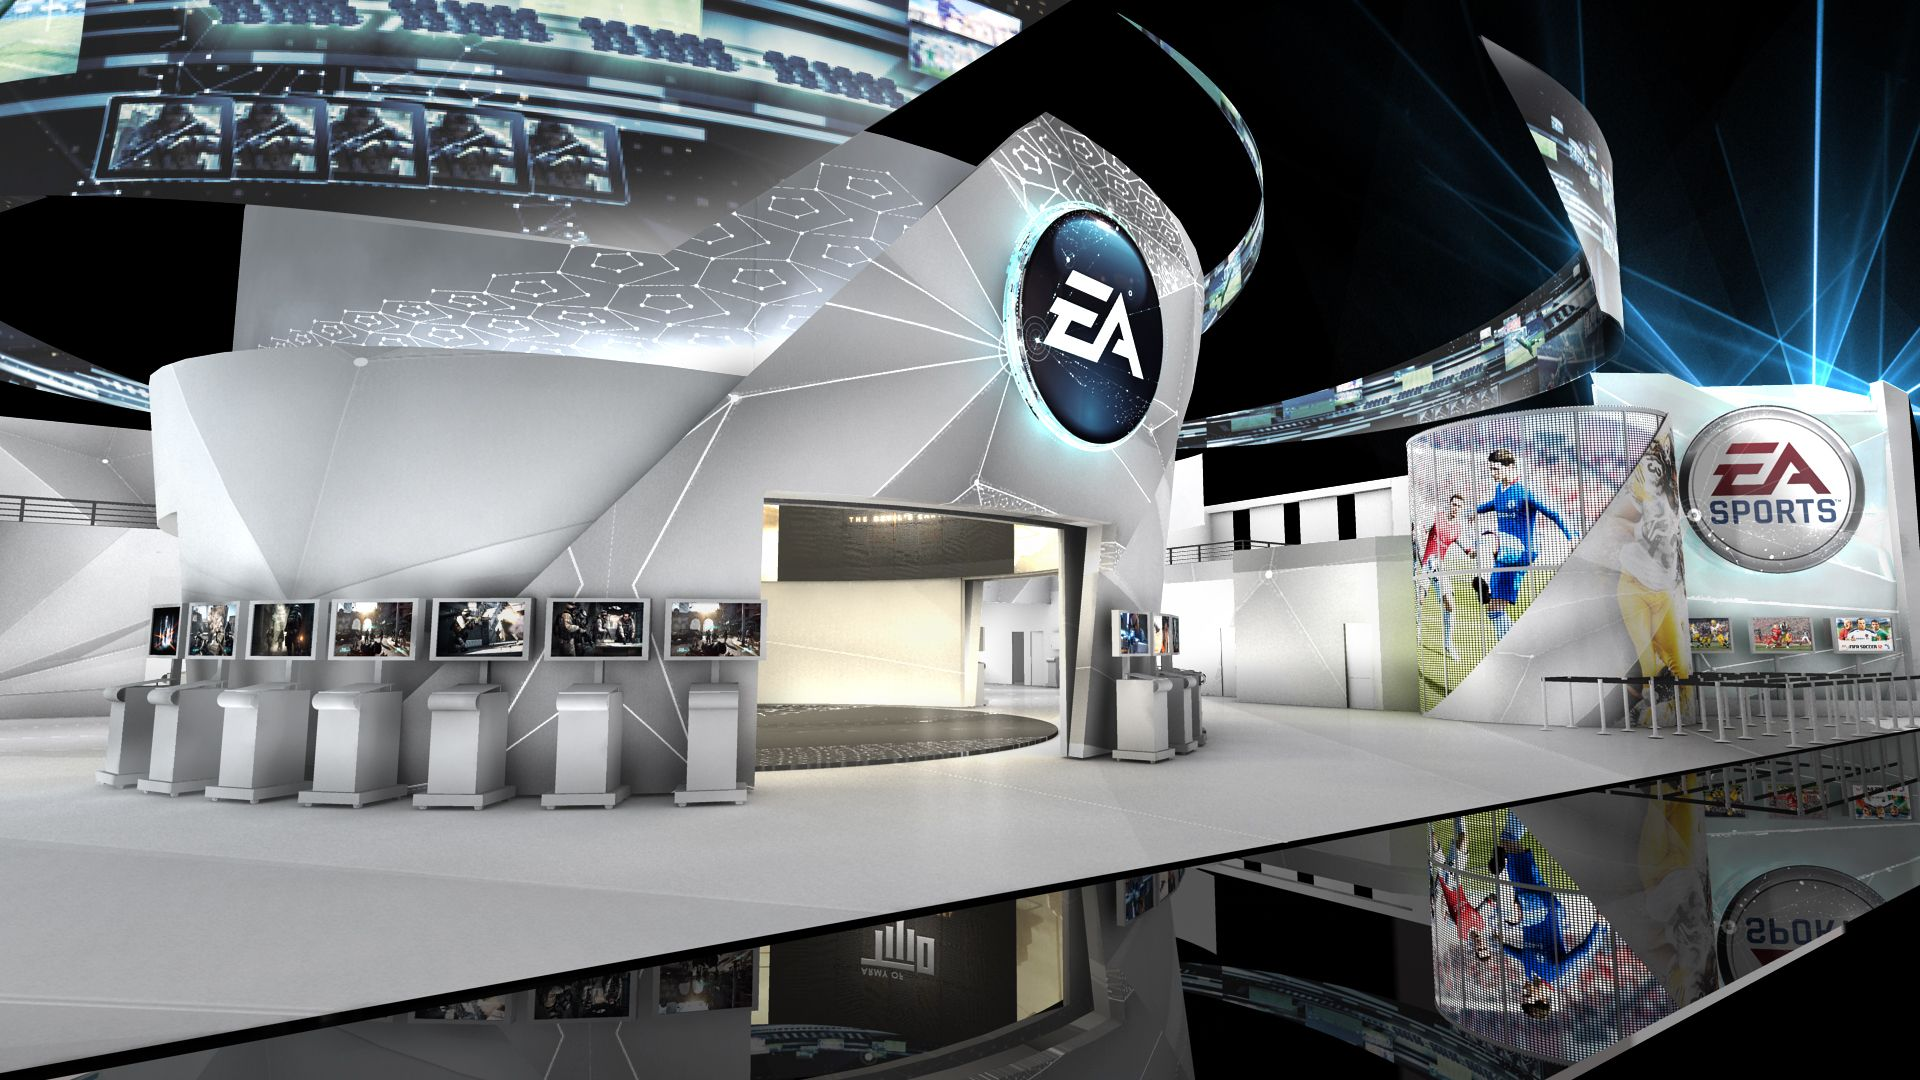 Exhibition Stand Futuristic : A truly futuristic booth design engaging interactive